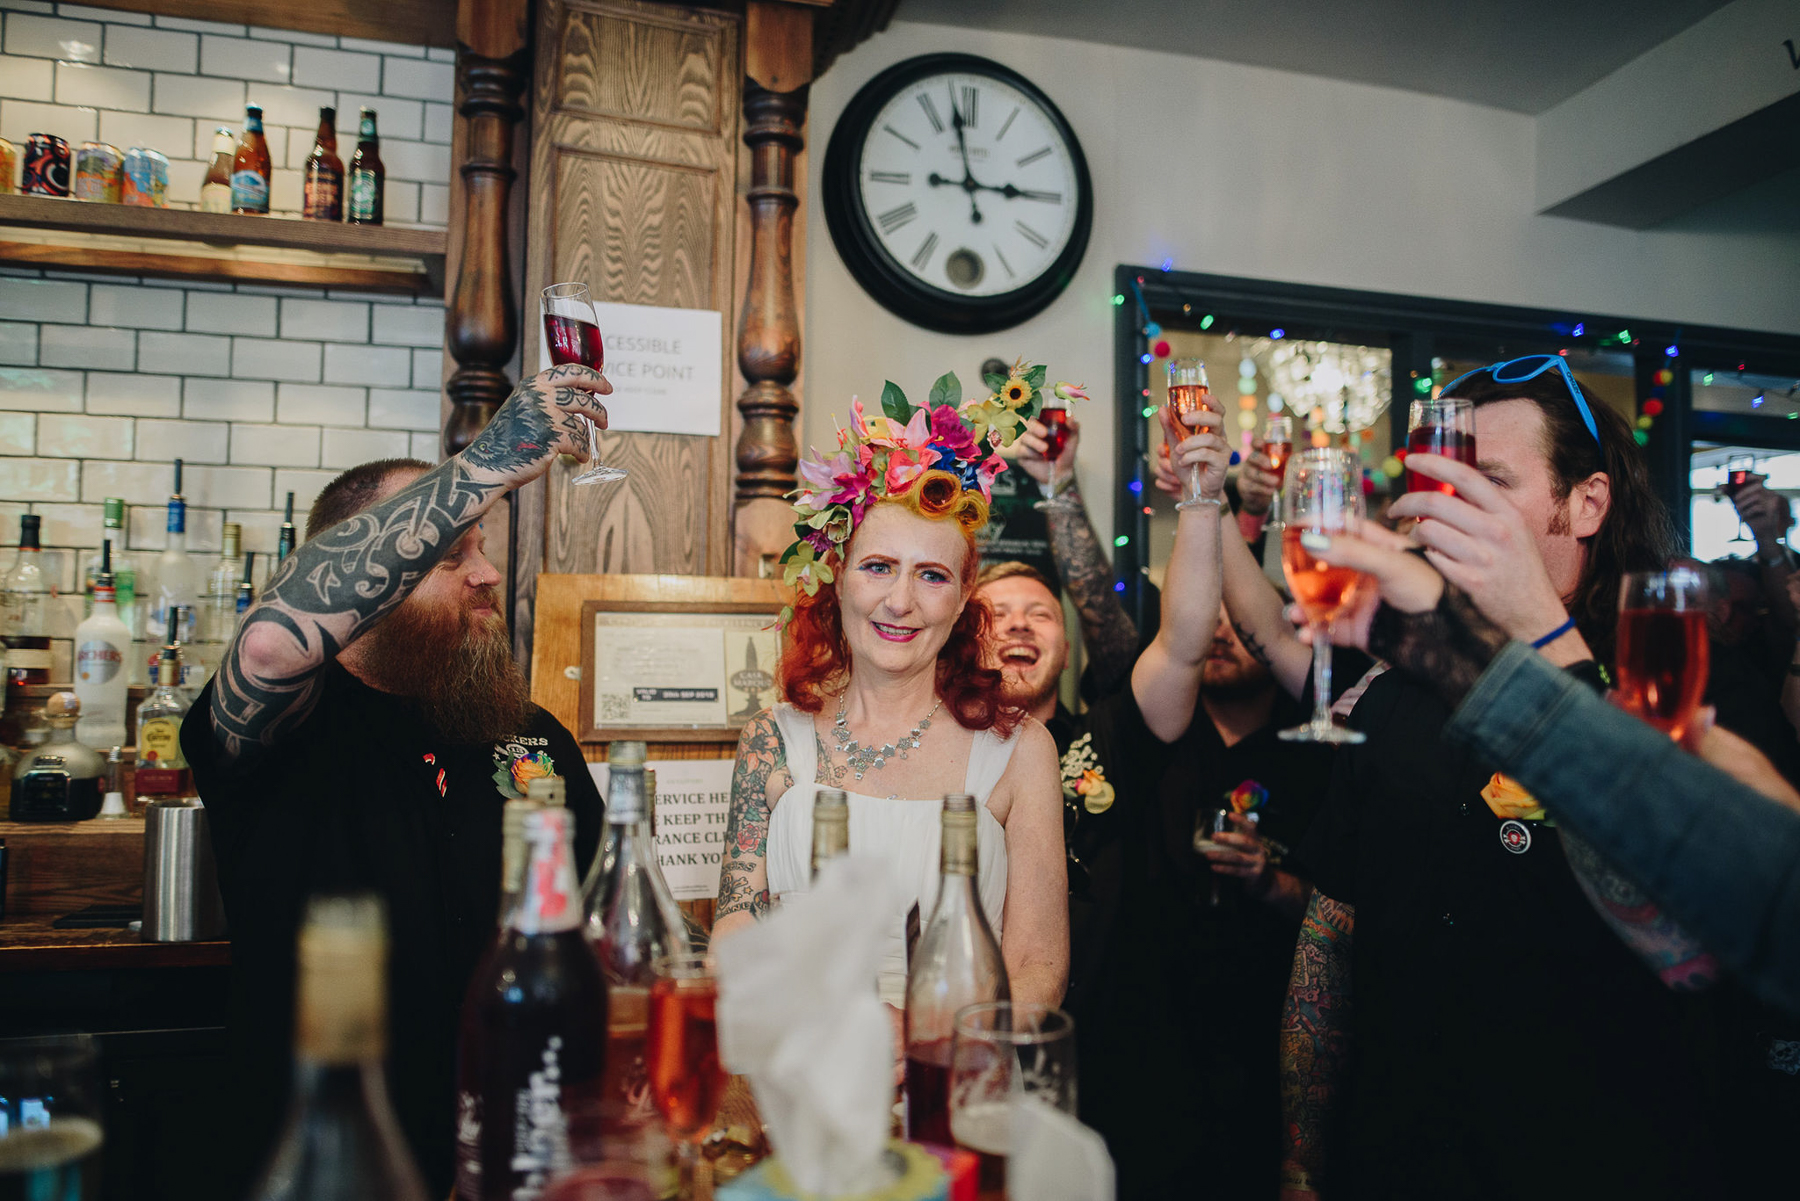 Alternative_Manchester_Northern_Quarter_Wedding_Photography_The_Pin-Up_Bride-47.jpg